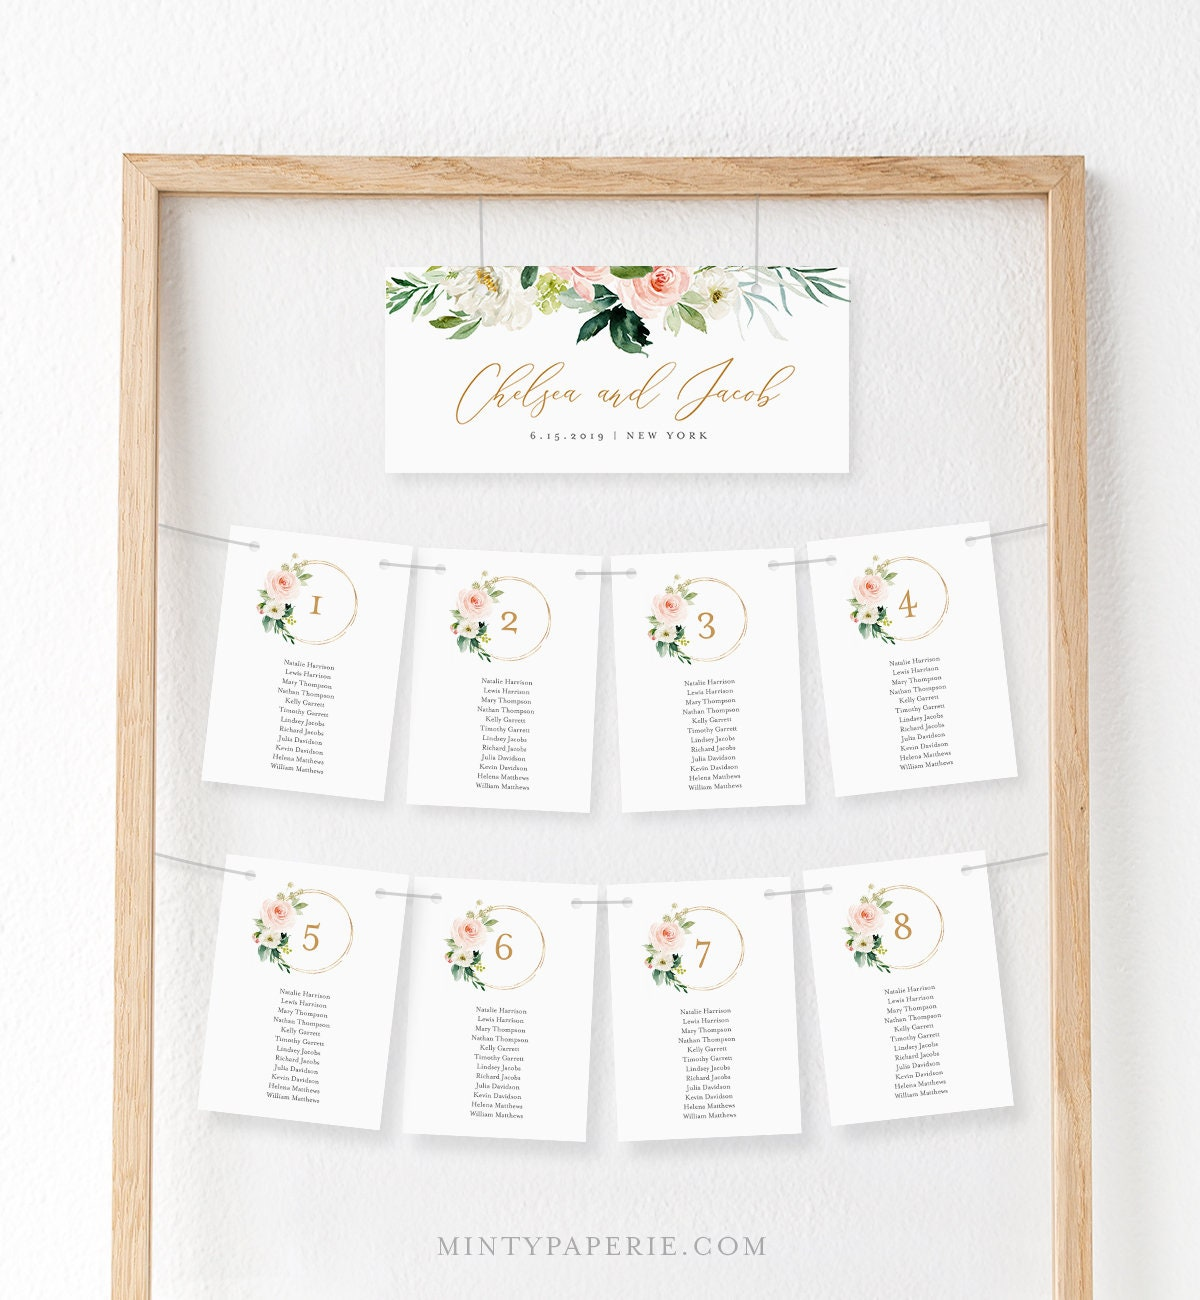 Seating Chart Printable Table Seating Cards Boho Floral Wedding Seating Plan Template Instant Download 100 Editable Text 043 110sp